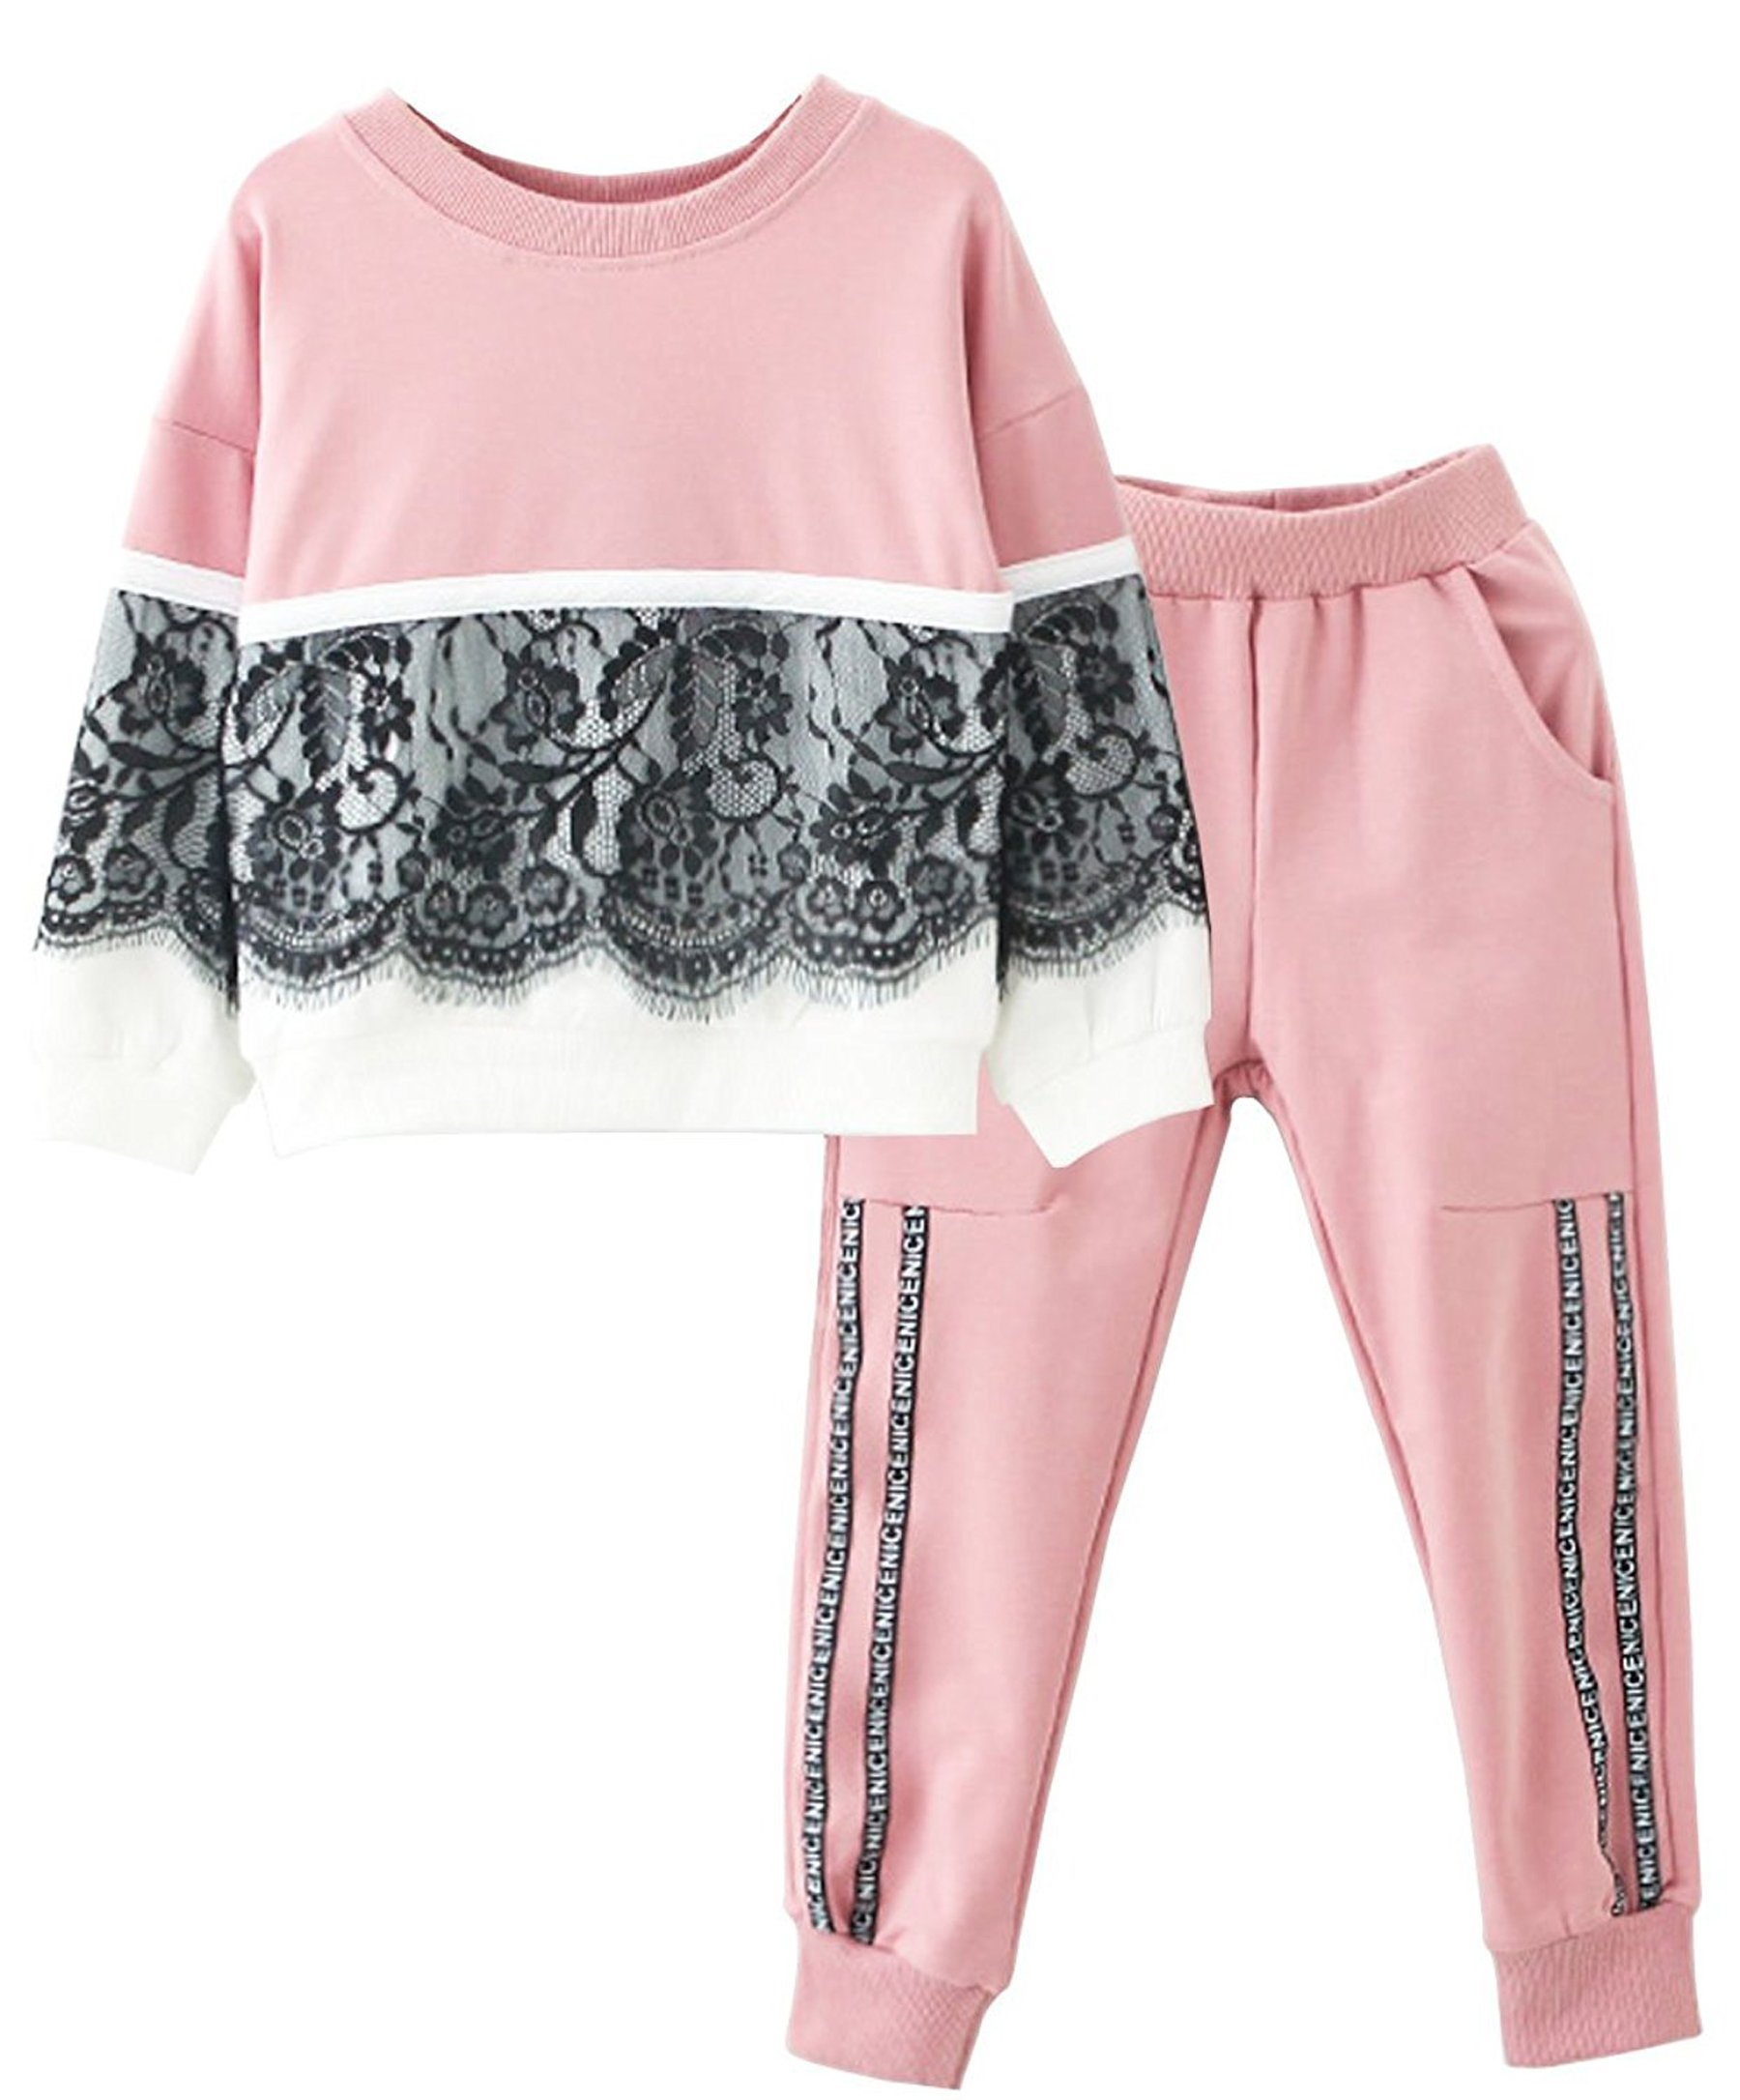 M RACLE Cute Little Girls' 2 Pieces Long Sleeve Top Pants Leggings Clothes Set Outfit (10-11 Years, Pink White)